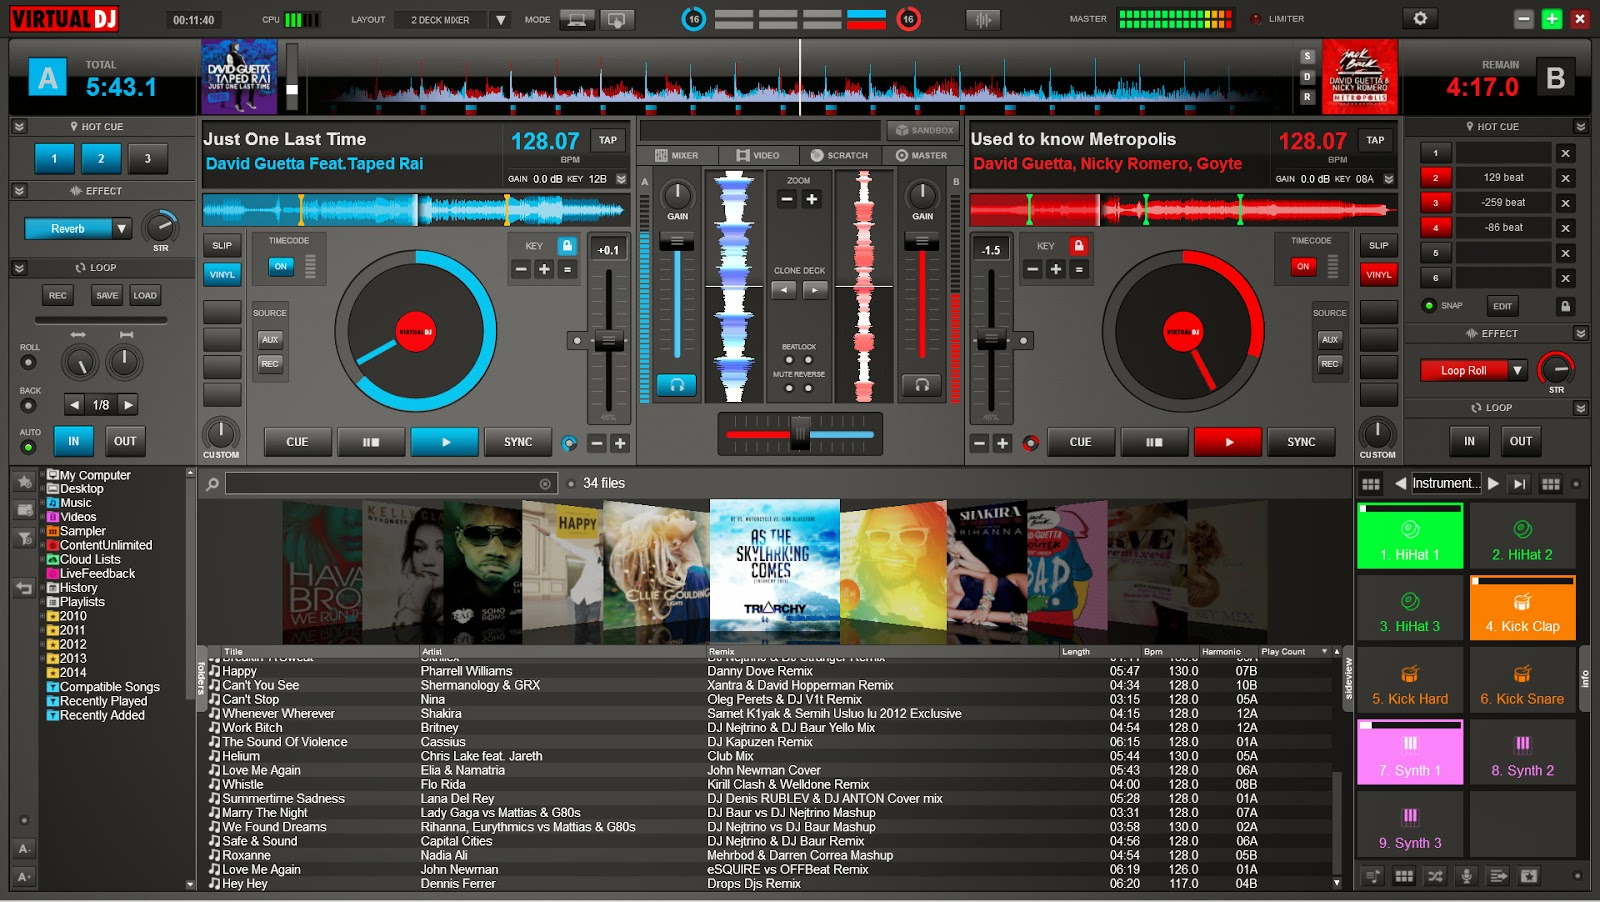 Virtual DJ 2020 Download Latest Version